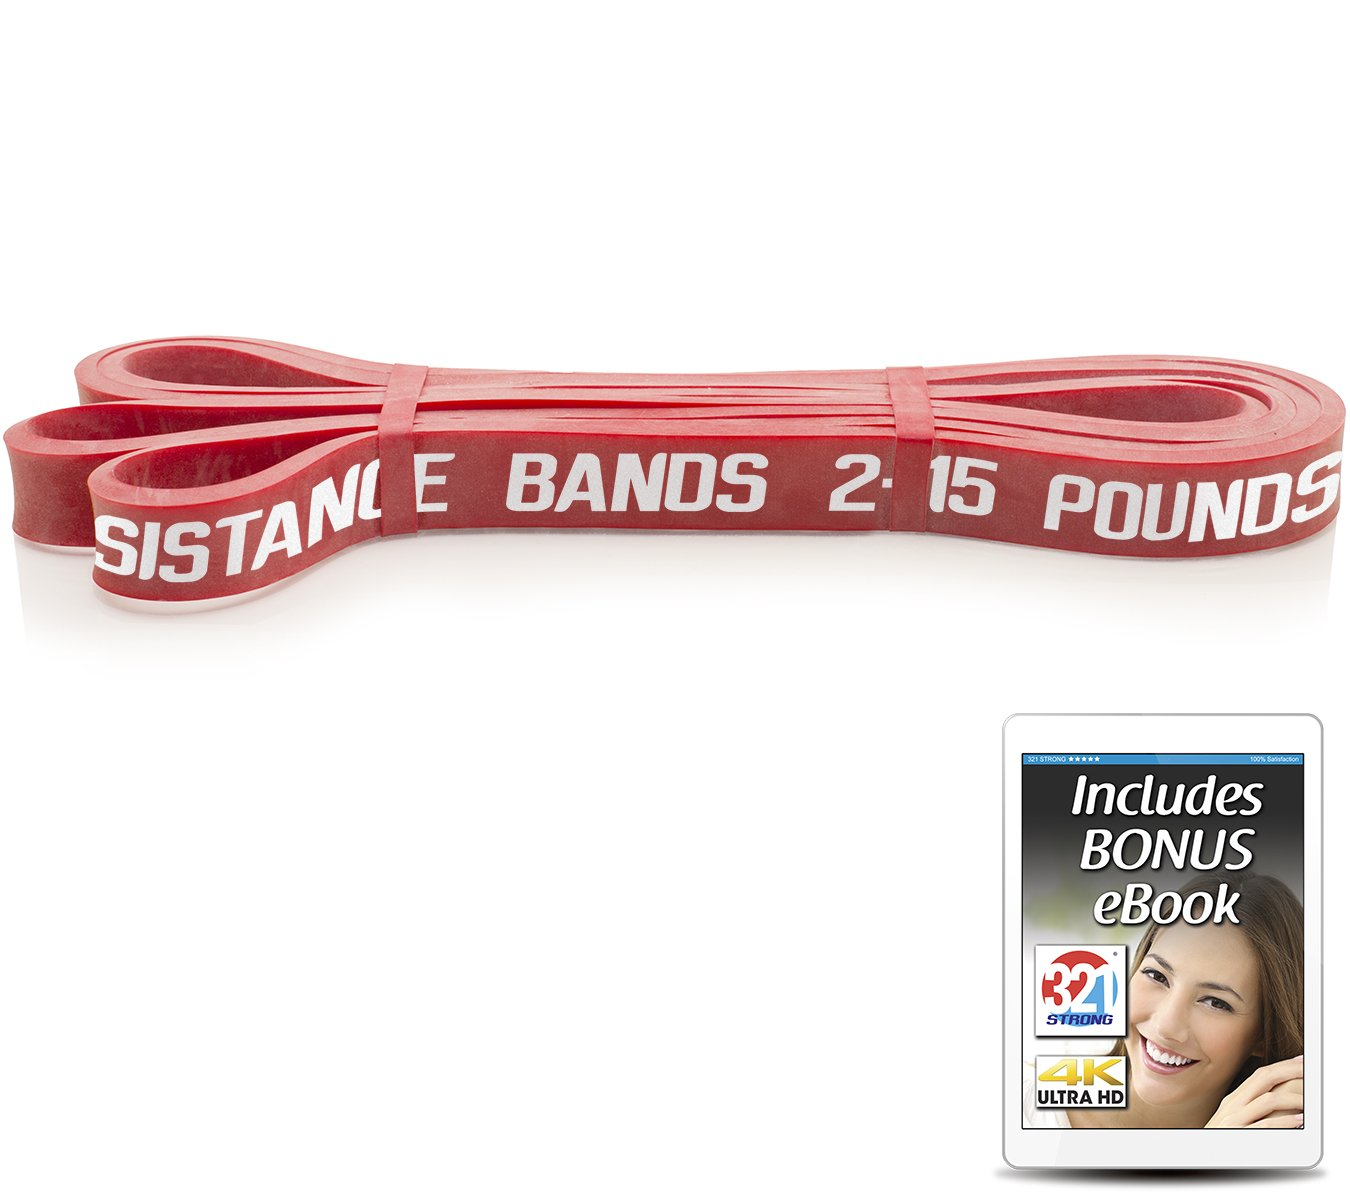 321 STRONG Exercise Resistance Bands - Level 2 by 321 STRONG (Image #1)